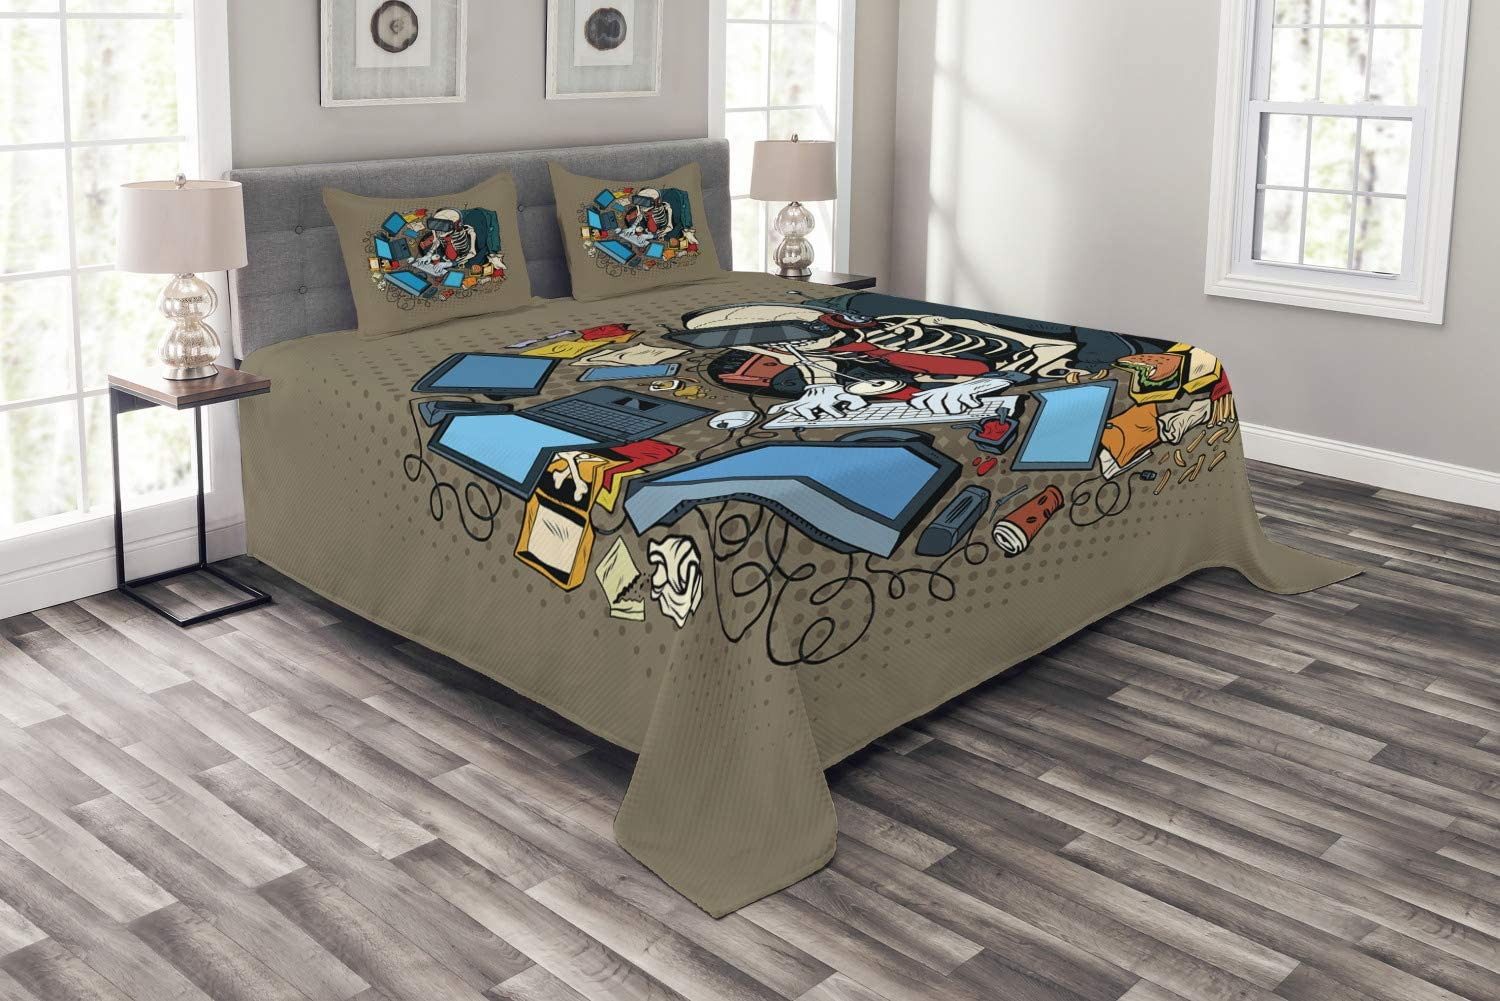 Ambesonne Gamer Bedspread, Skeleton Programmer and Hacker in Virtual Reality Eating Fast Food Theme Illustration, Decorative Quilted 3 Piece Coverlet Set with 2 Pillow Shams, Queen Size, Taupe Blue